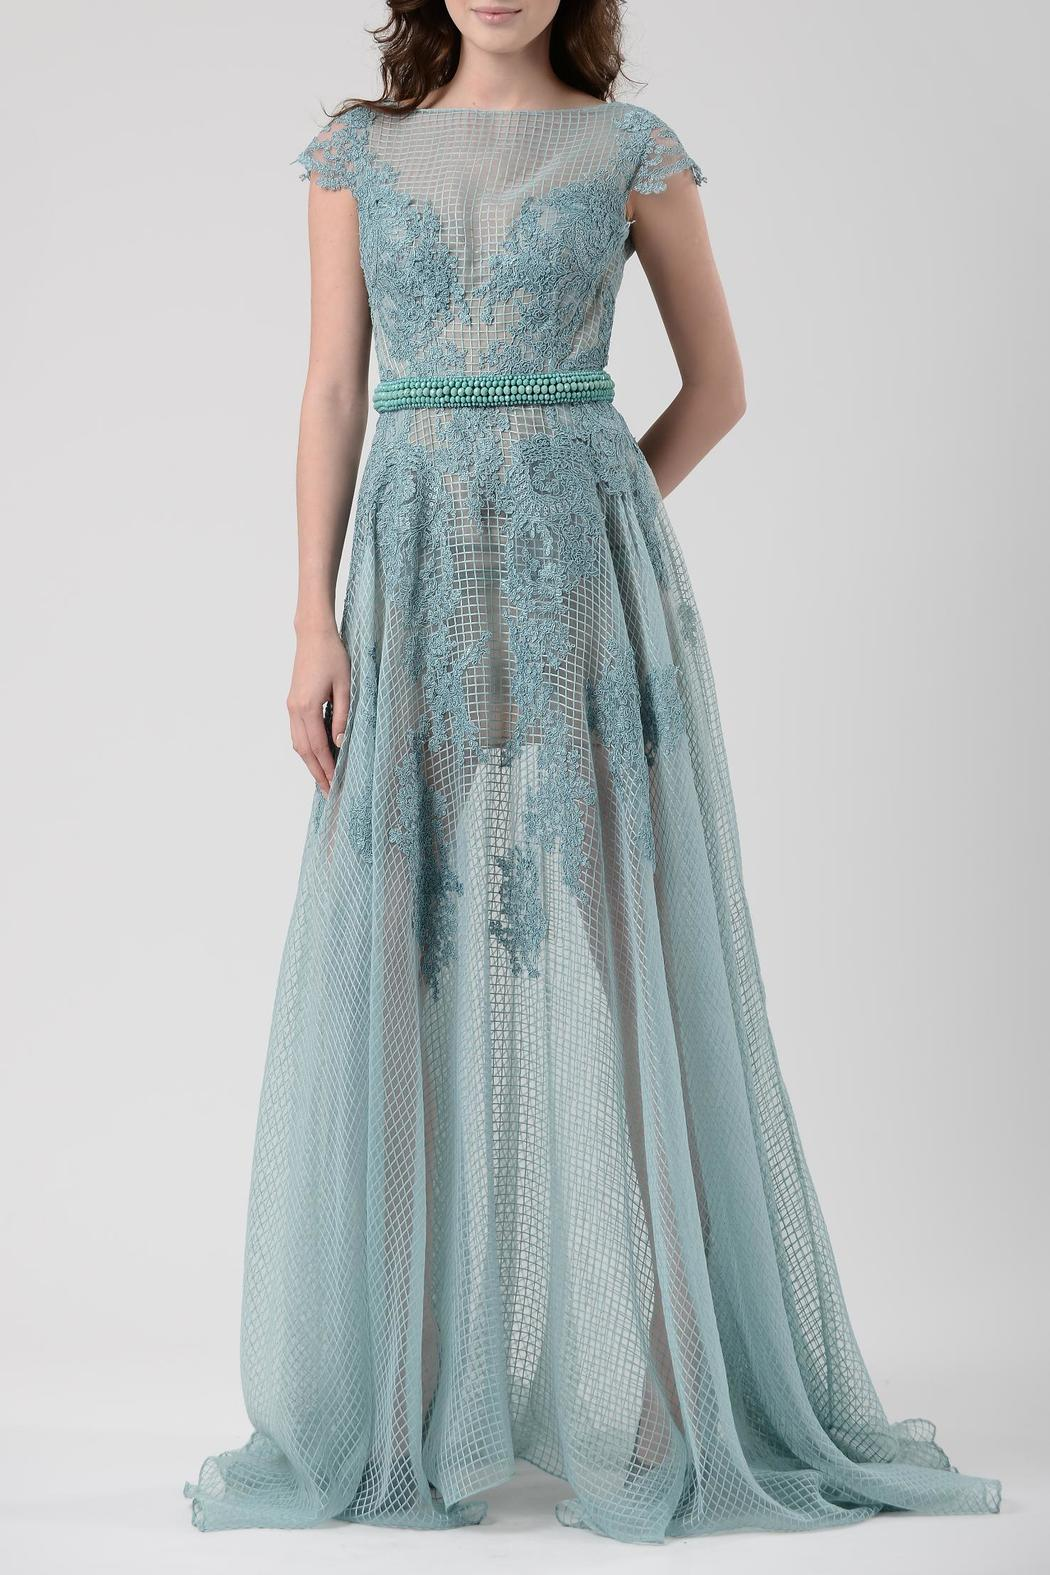 Gemy Maalouf Sheer Evening Gown from New Jersey by District 5 ...